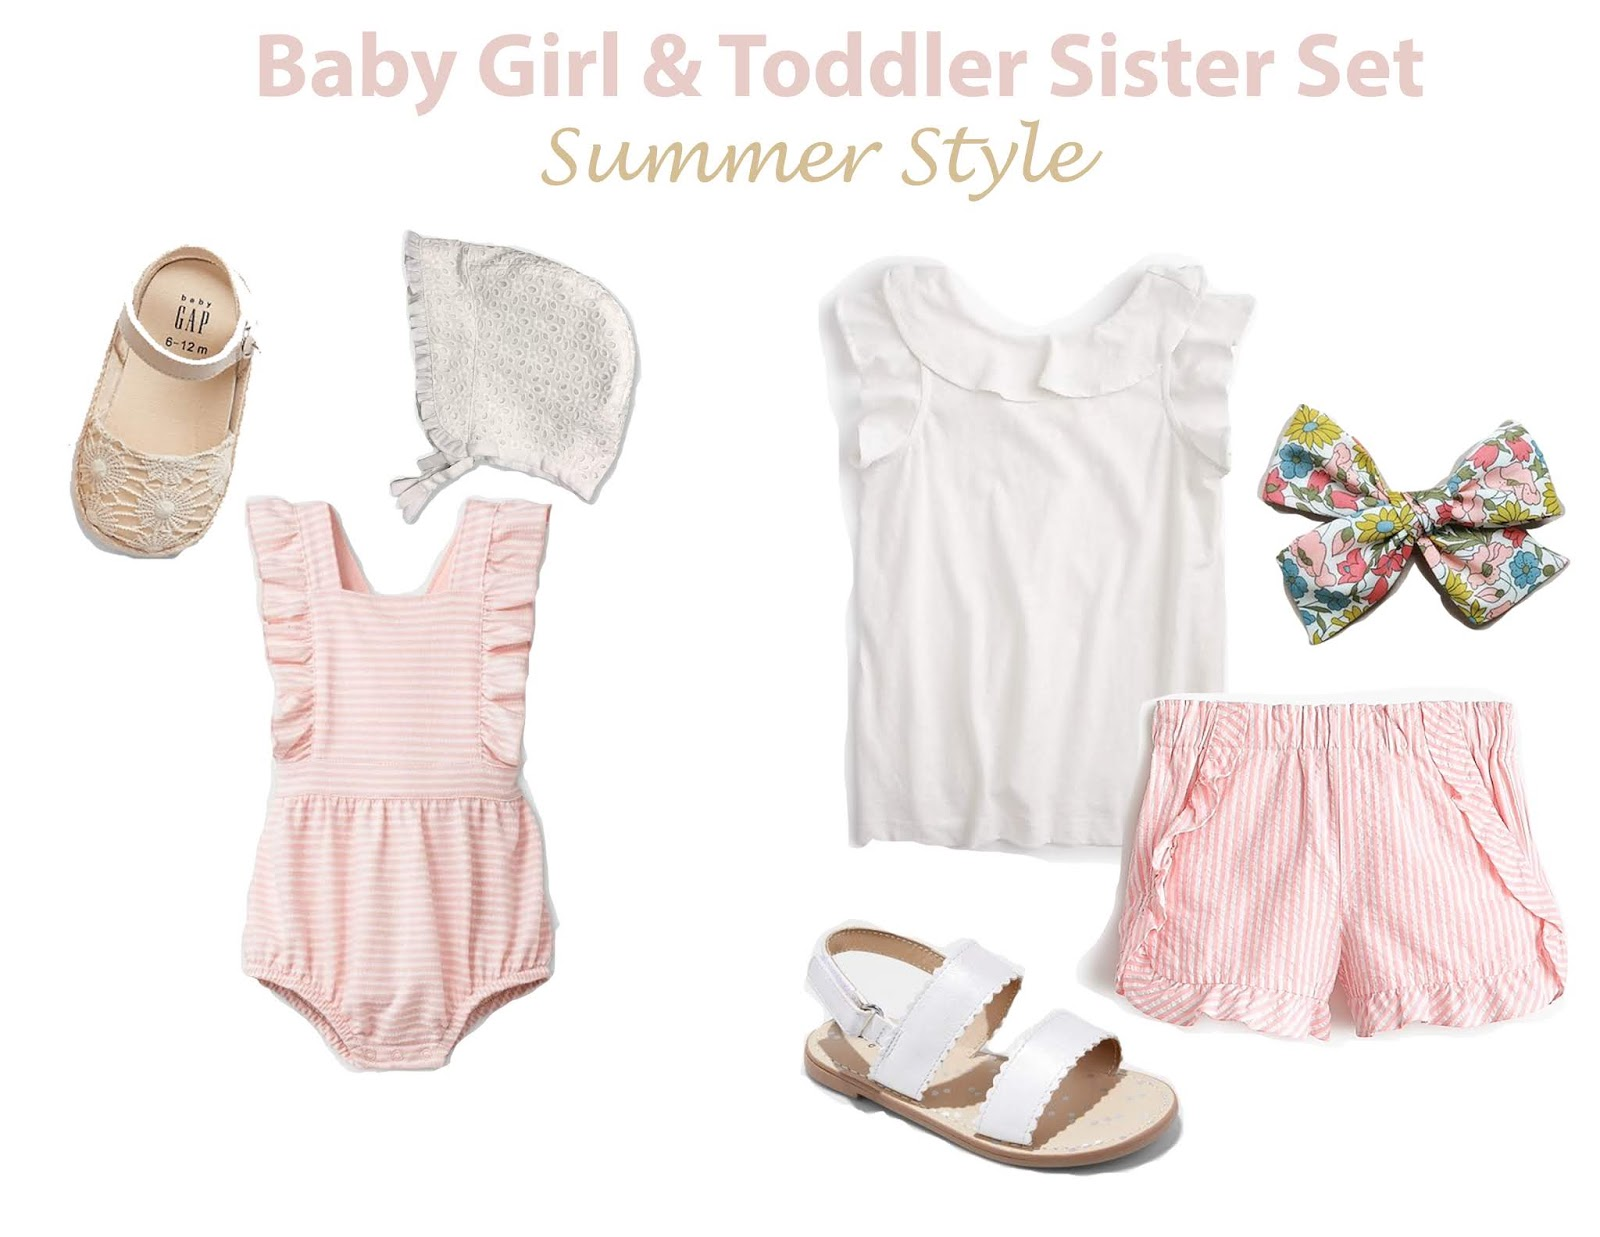 baby girl and toddler sister set outfit